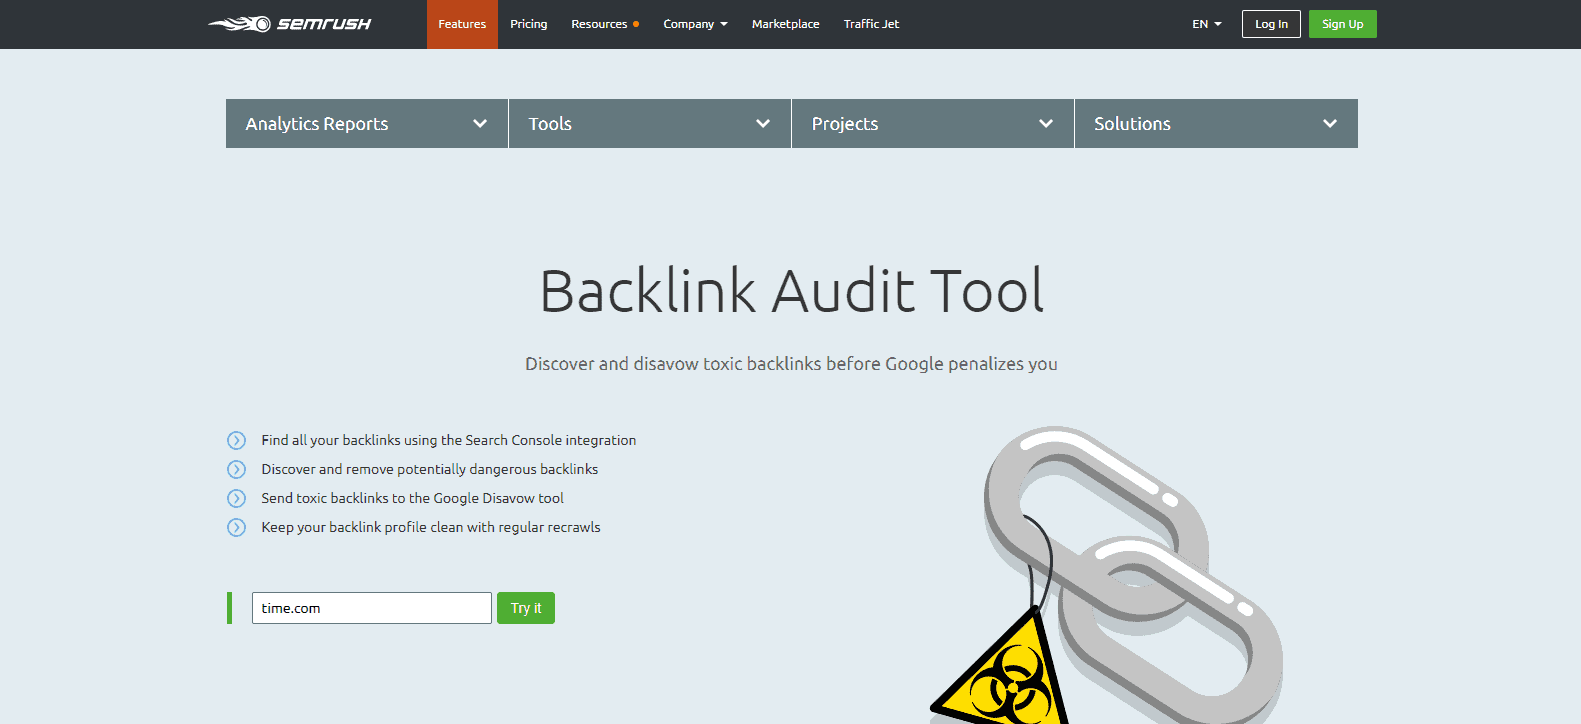 toxic backlinks - how to identify - semrush backlink audit tool